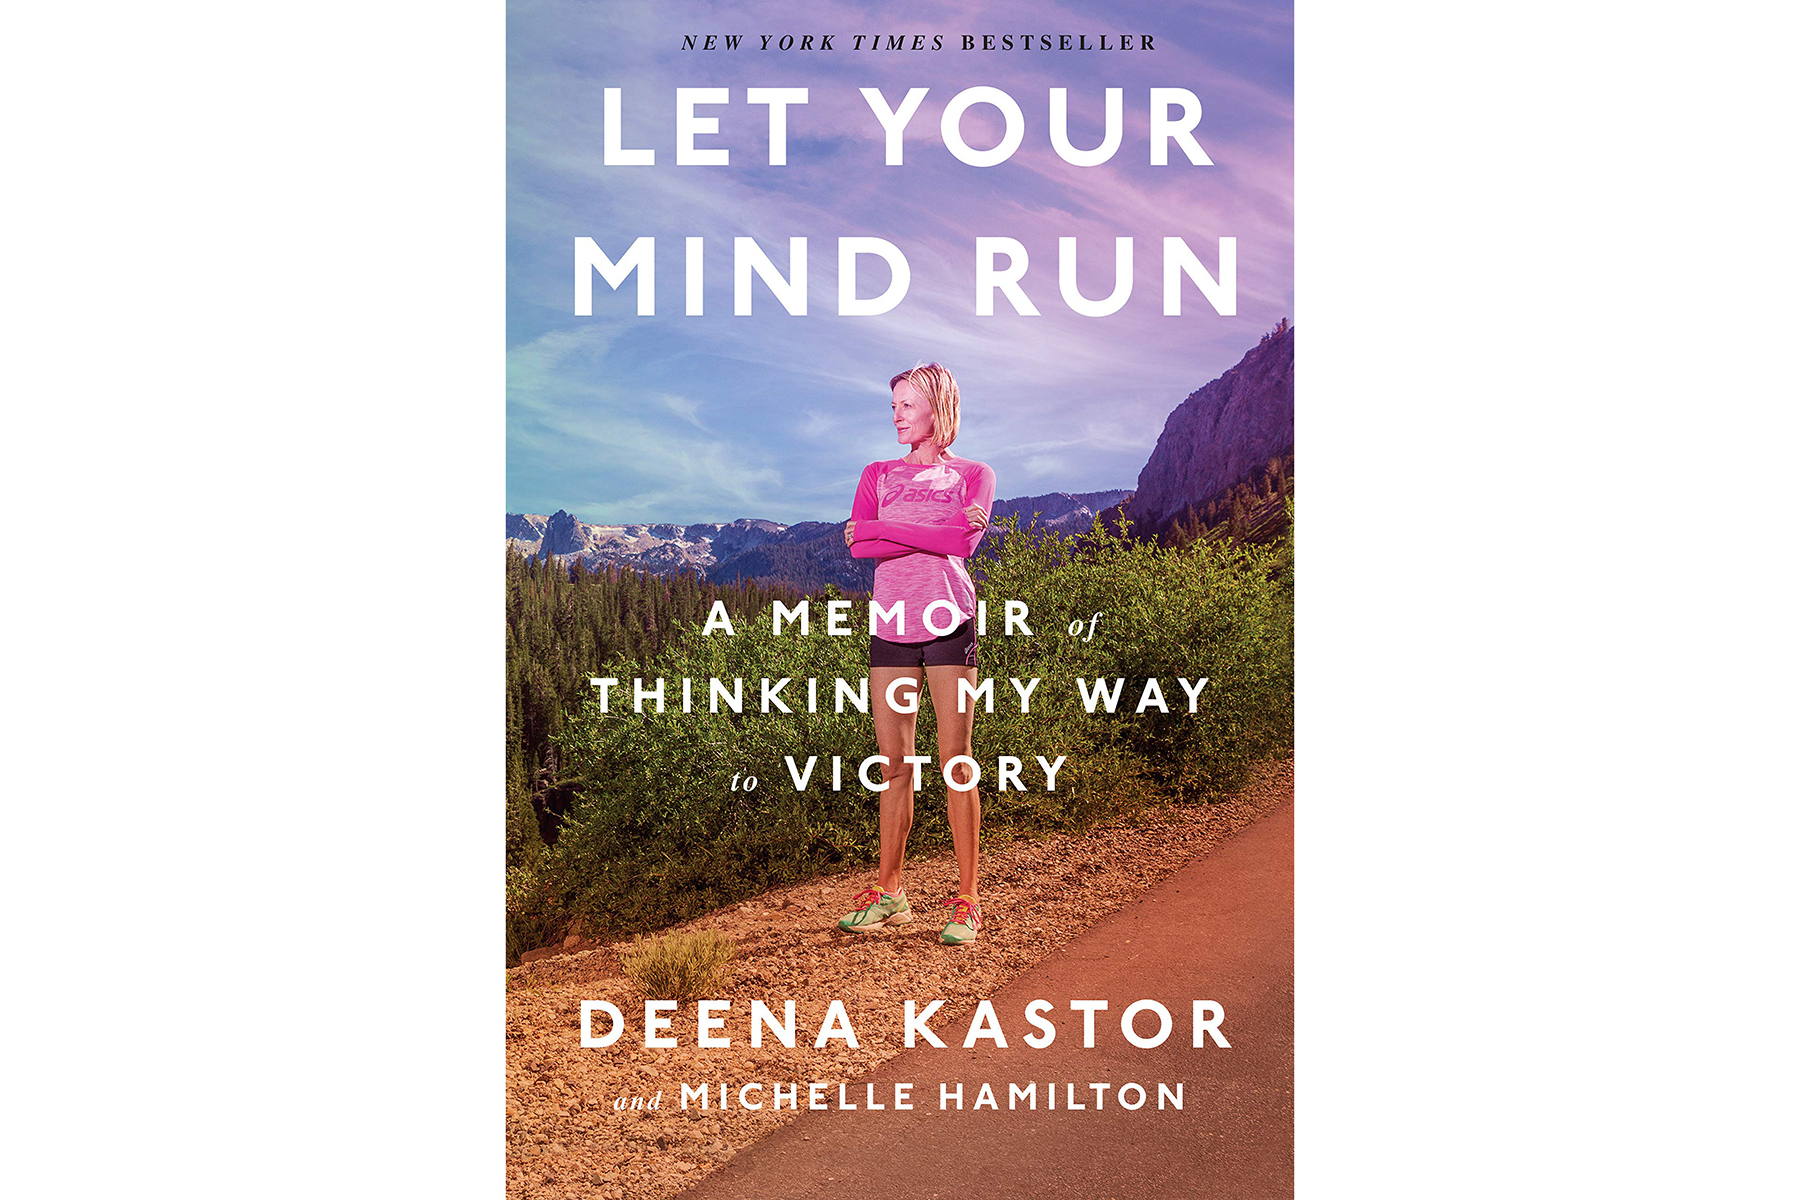 Cover of Let Your Mind Run, by Deena Kastor